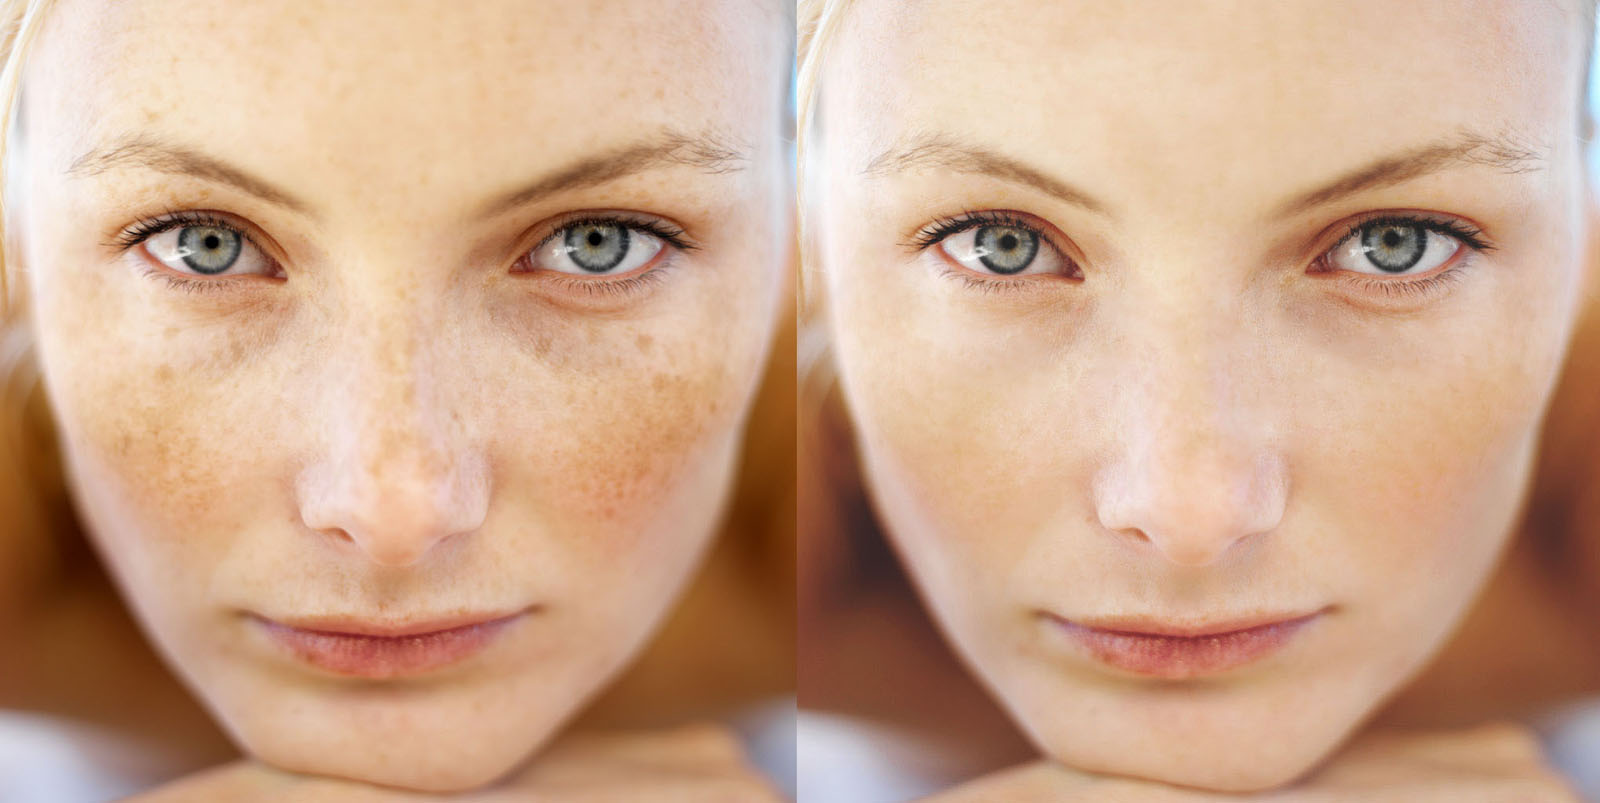 Freckles treatment options